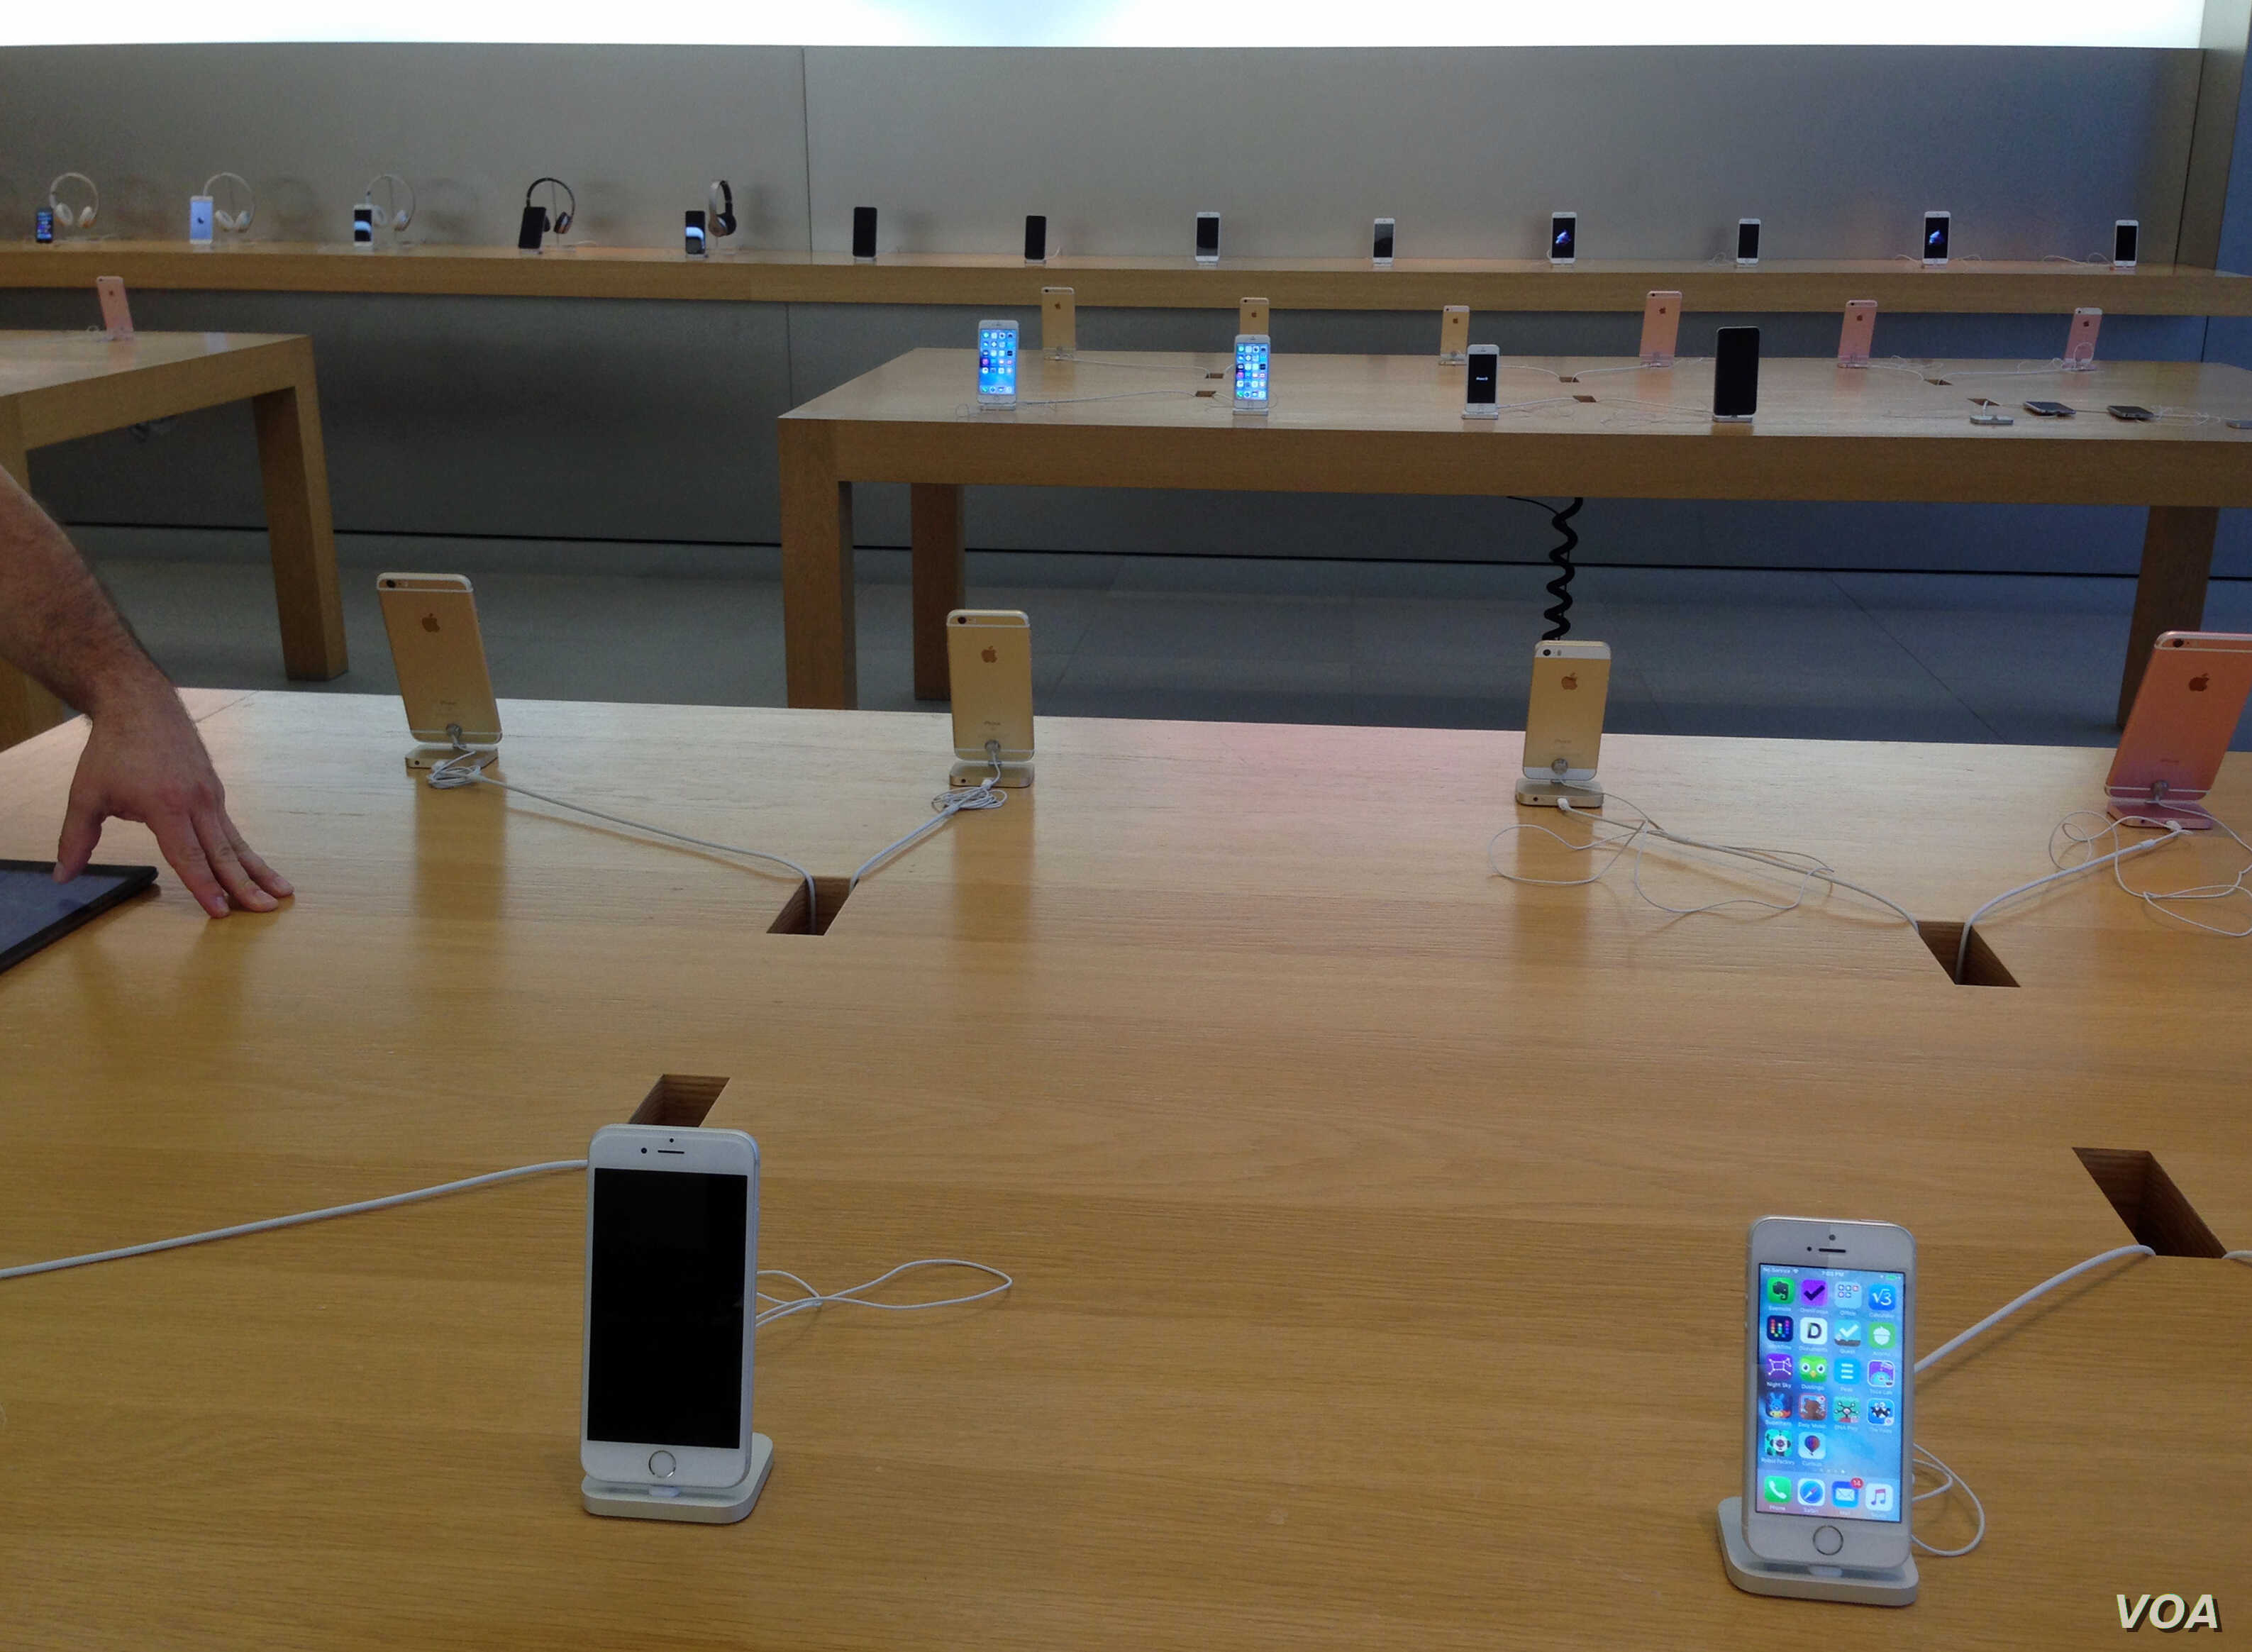 iPhones on display at an Apple store in Virginia, USA, April 4, 2016. (Photo: Diaa Bekheet/VOA)